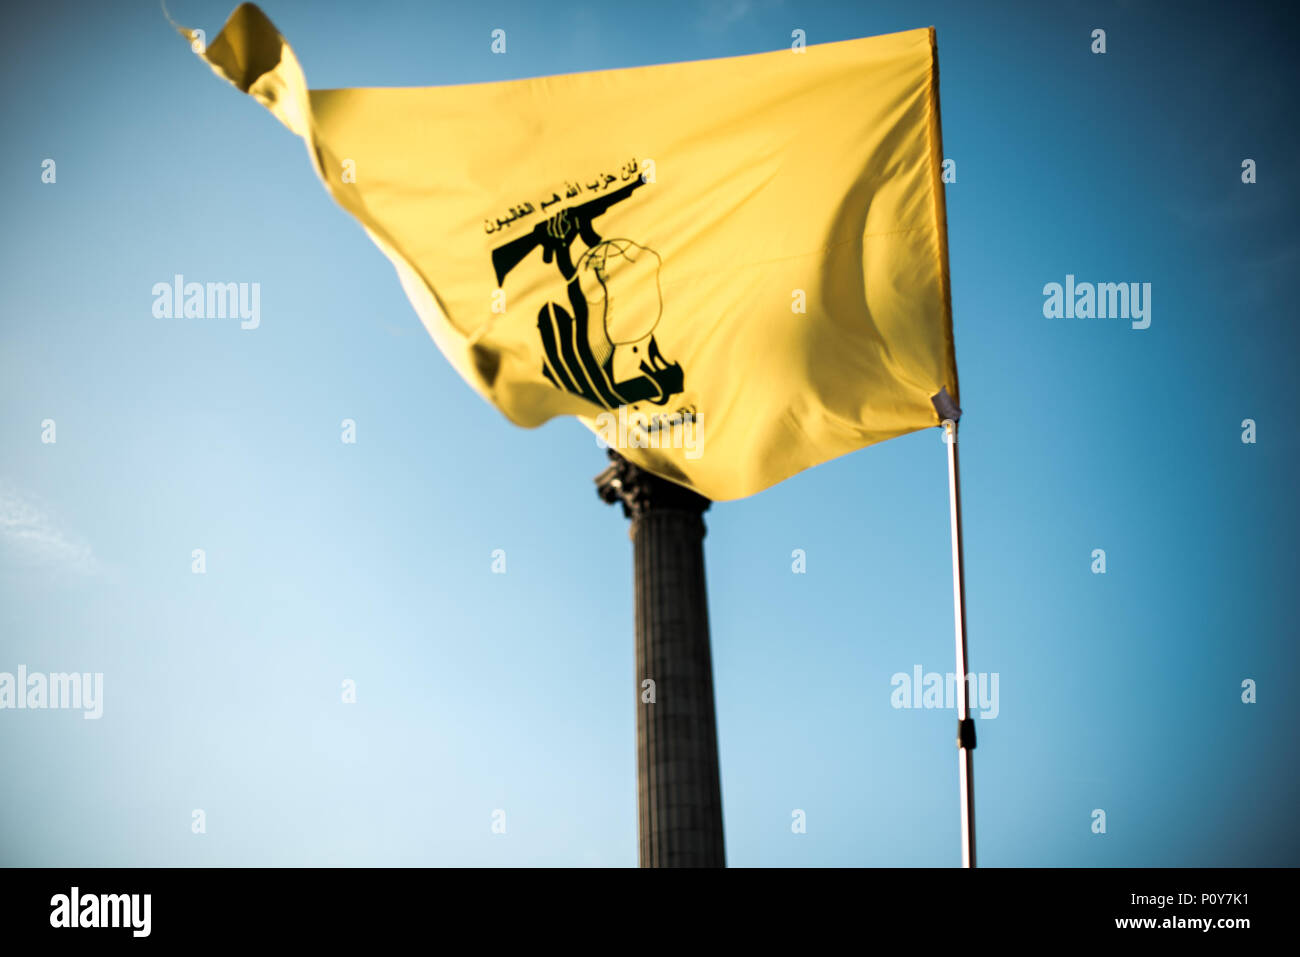 A Hezbollah flag seen in Trafalgar Square during the demonstration.  Hundreds of anti-Israel protesters marched through the streets on the annual Al Quds Day. Started by the Ayatollah Khomeini in 1979 to show support for Palestine and oppose the existence of Israel and the counter protest from the Zionist Federation. - Stock Image